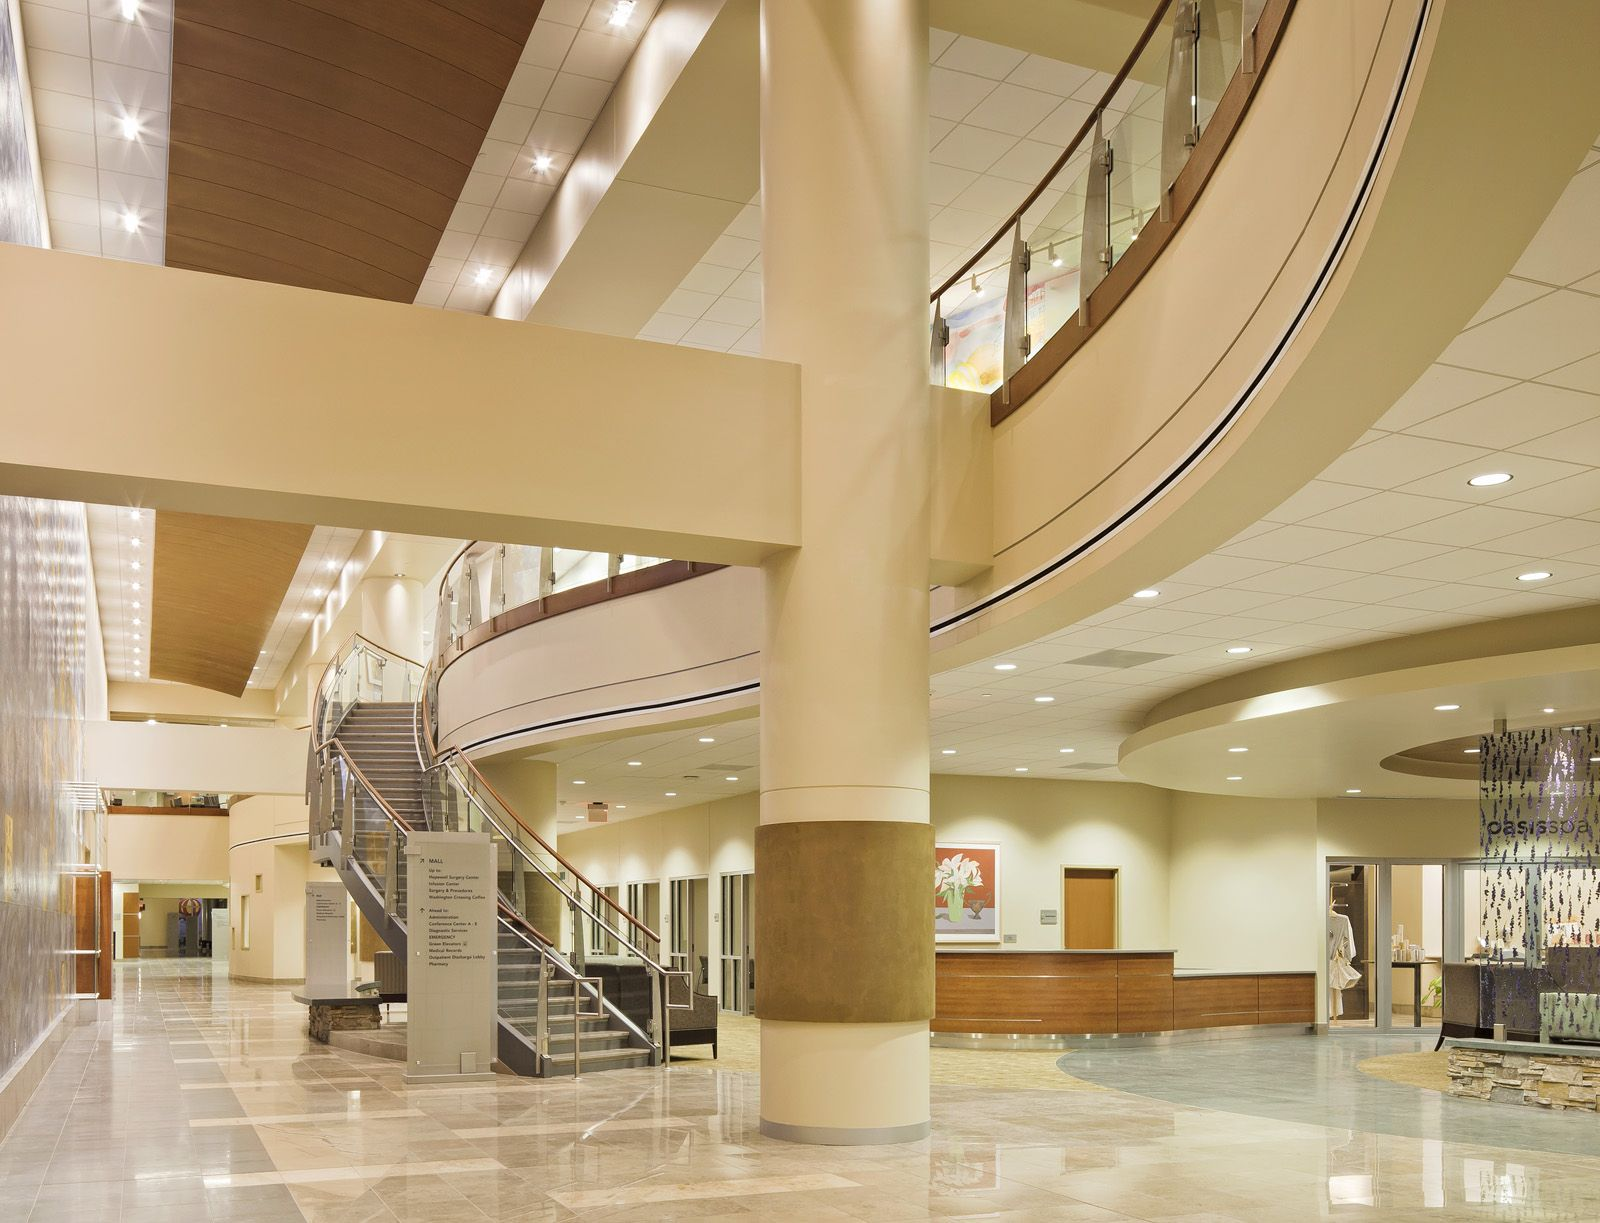 sustainable interiors help create leed gold certified hospital an article by arrays nicole wood - Interior Design Leed Certification